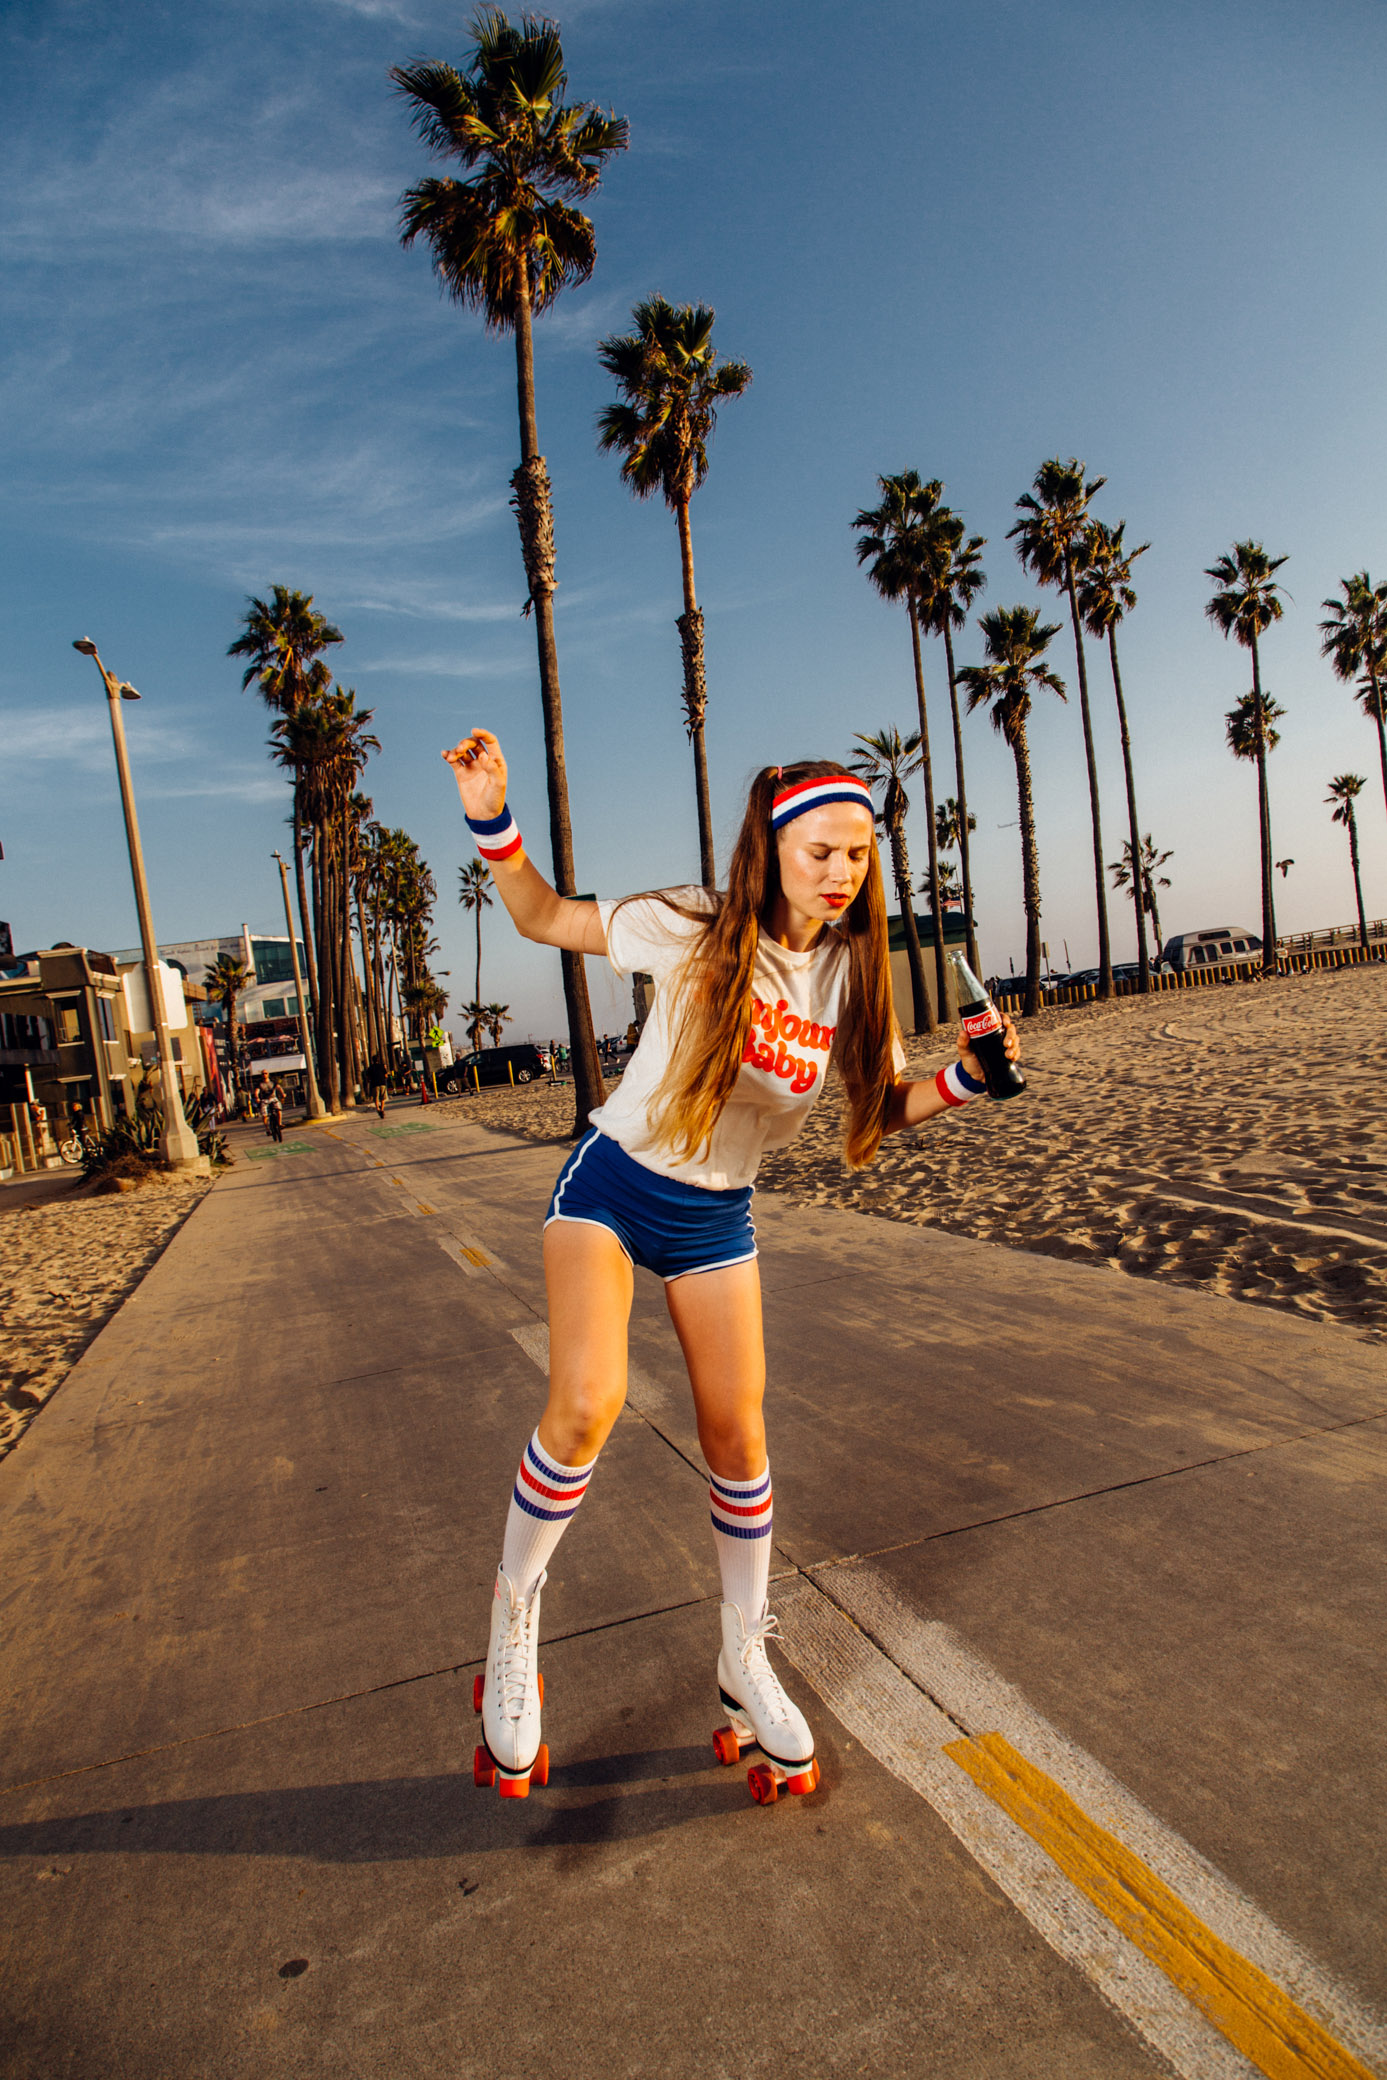 Roller skates Photoshoot on Venice